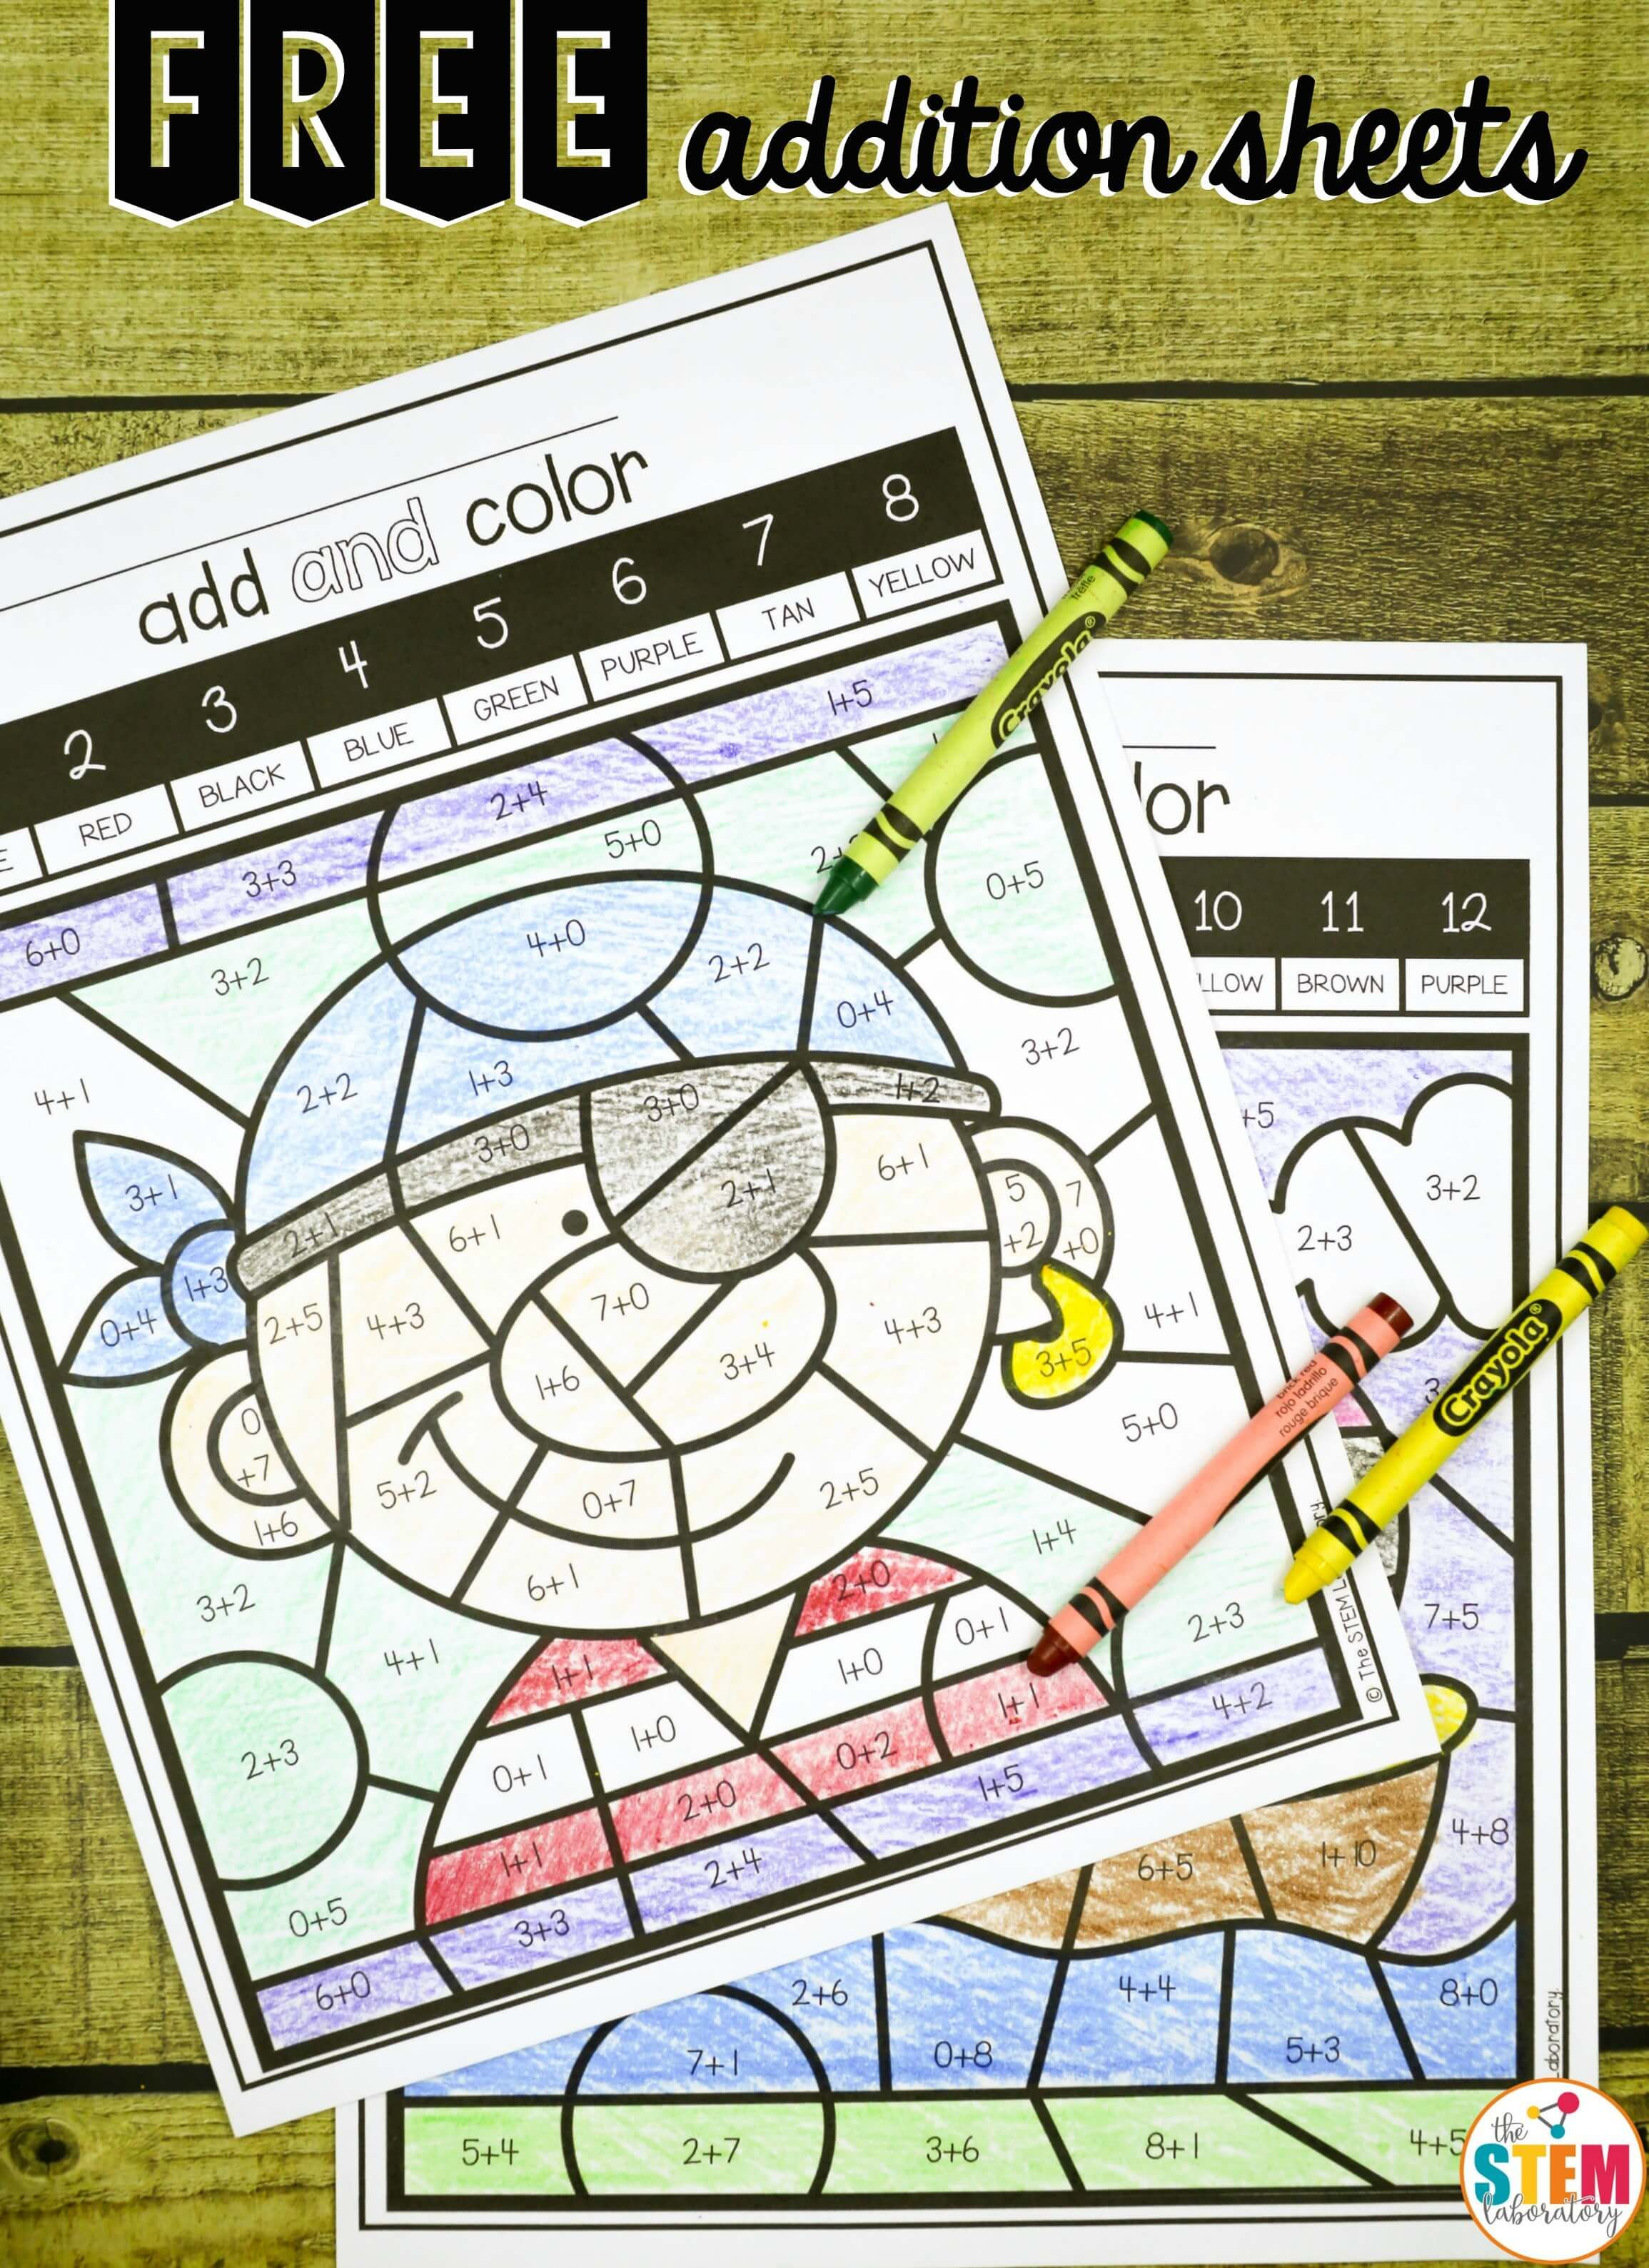 Free color by code addition sheets